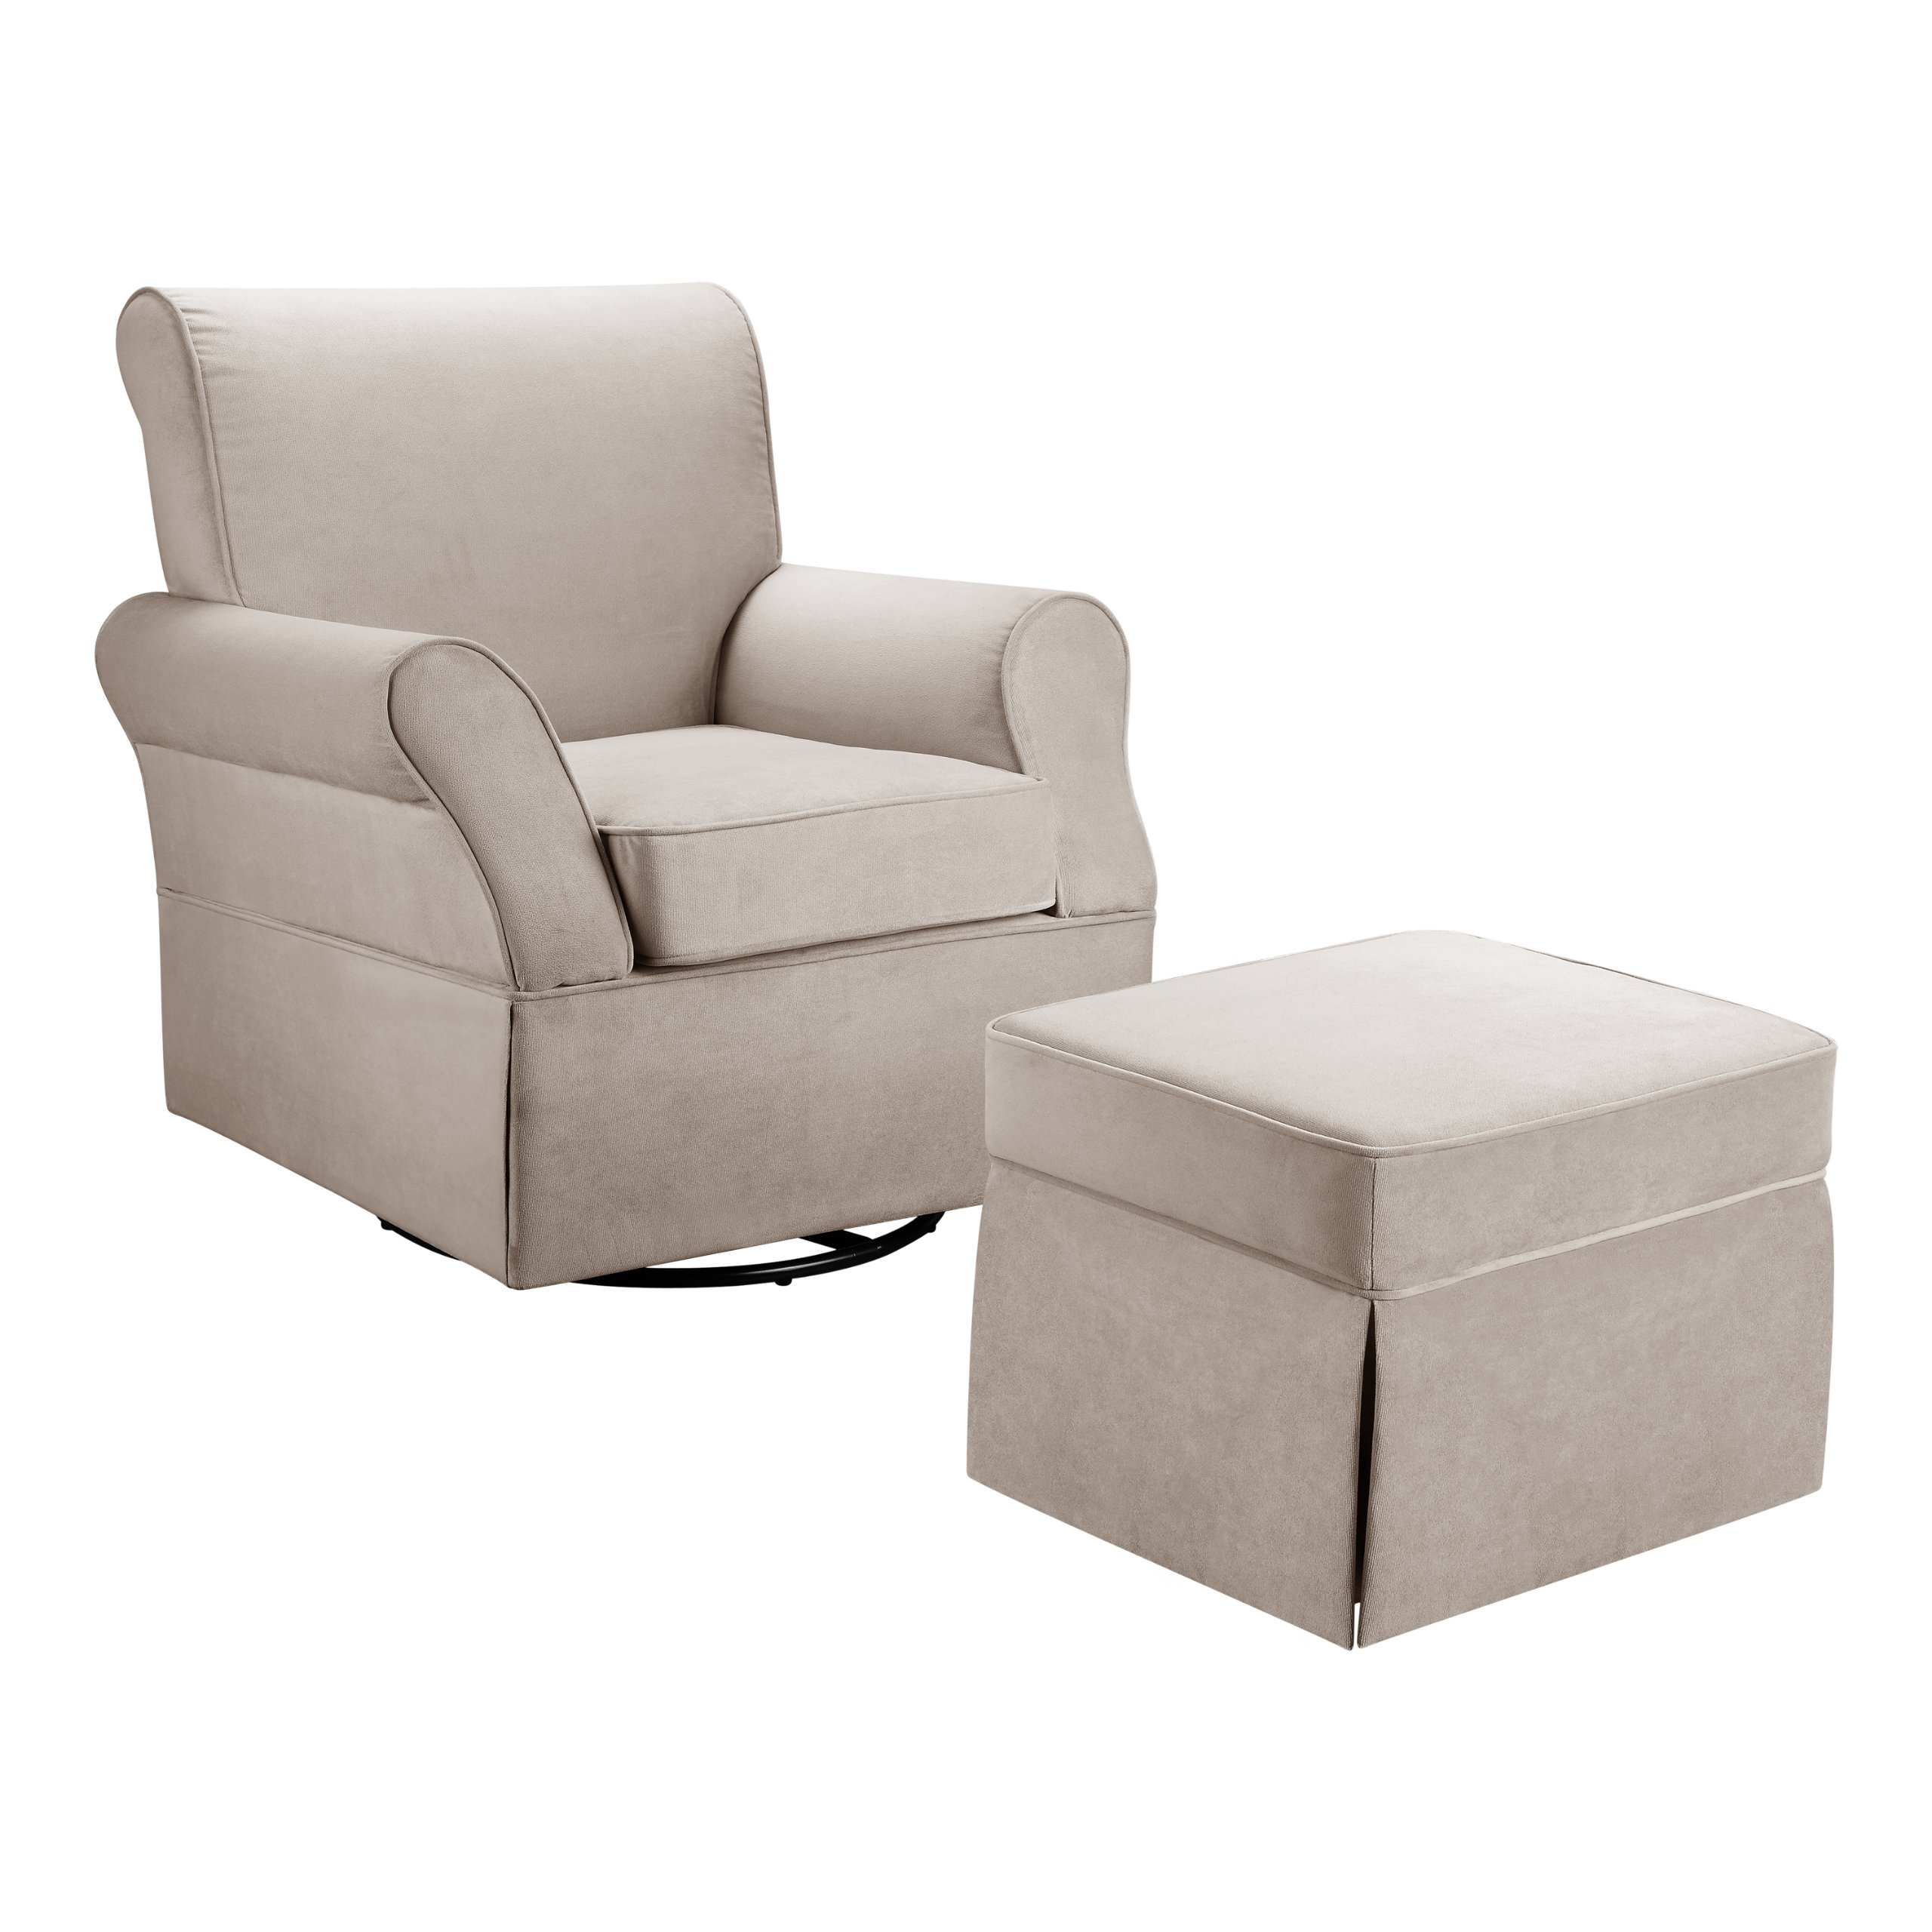 Baby Relax Swivel Glider and Ottoman, Comet Doe by Baby Relax